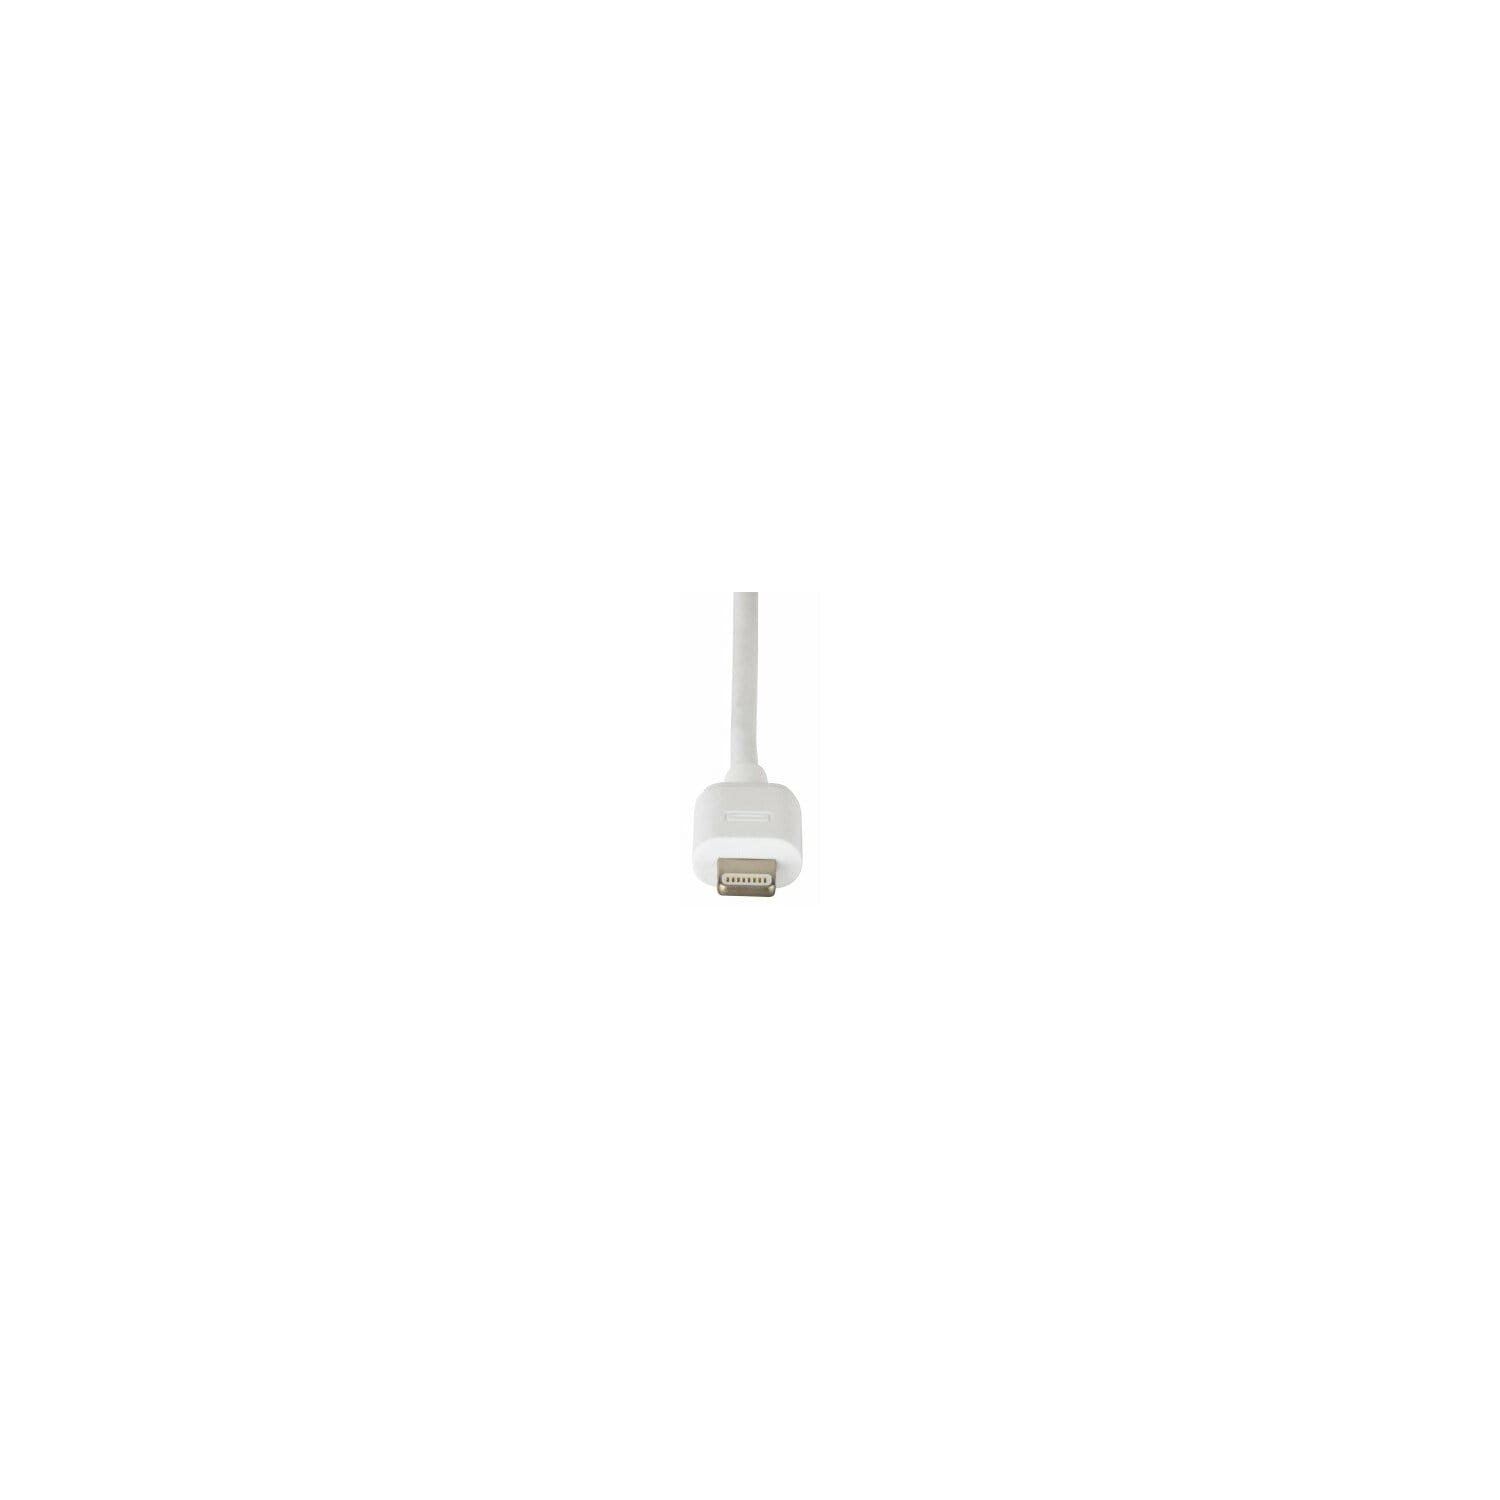 Kabel HAMA USB - Lightning 1.5m